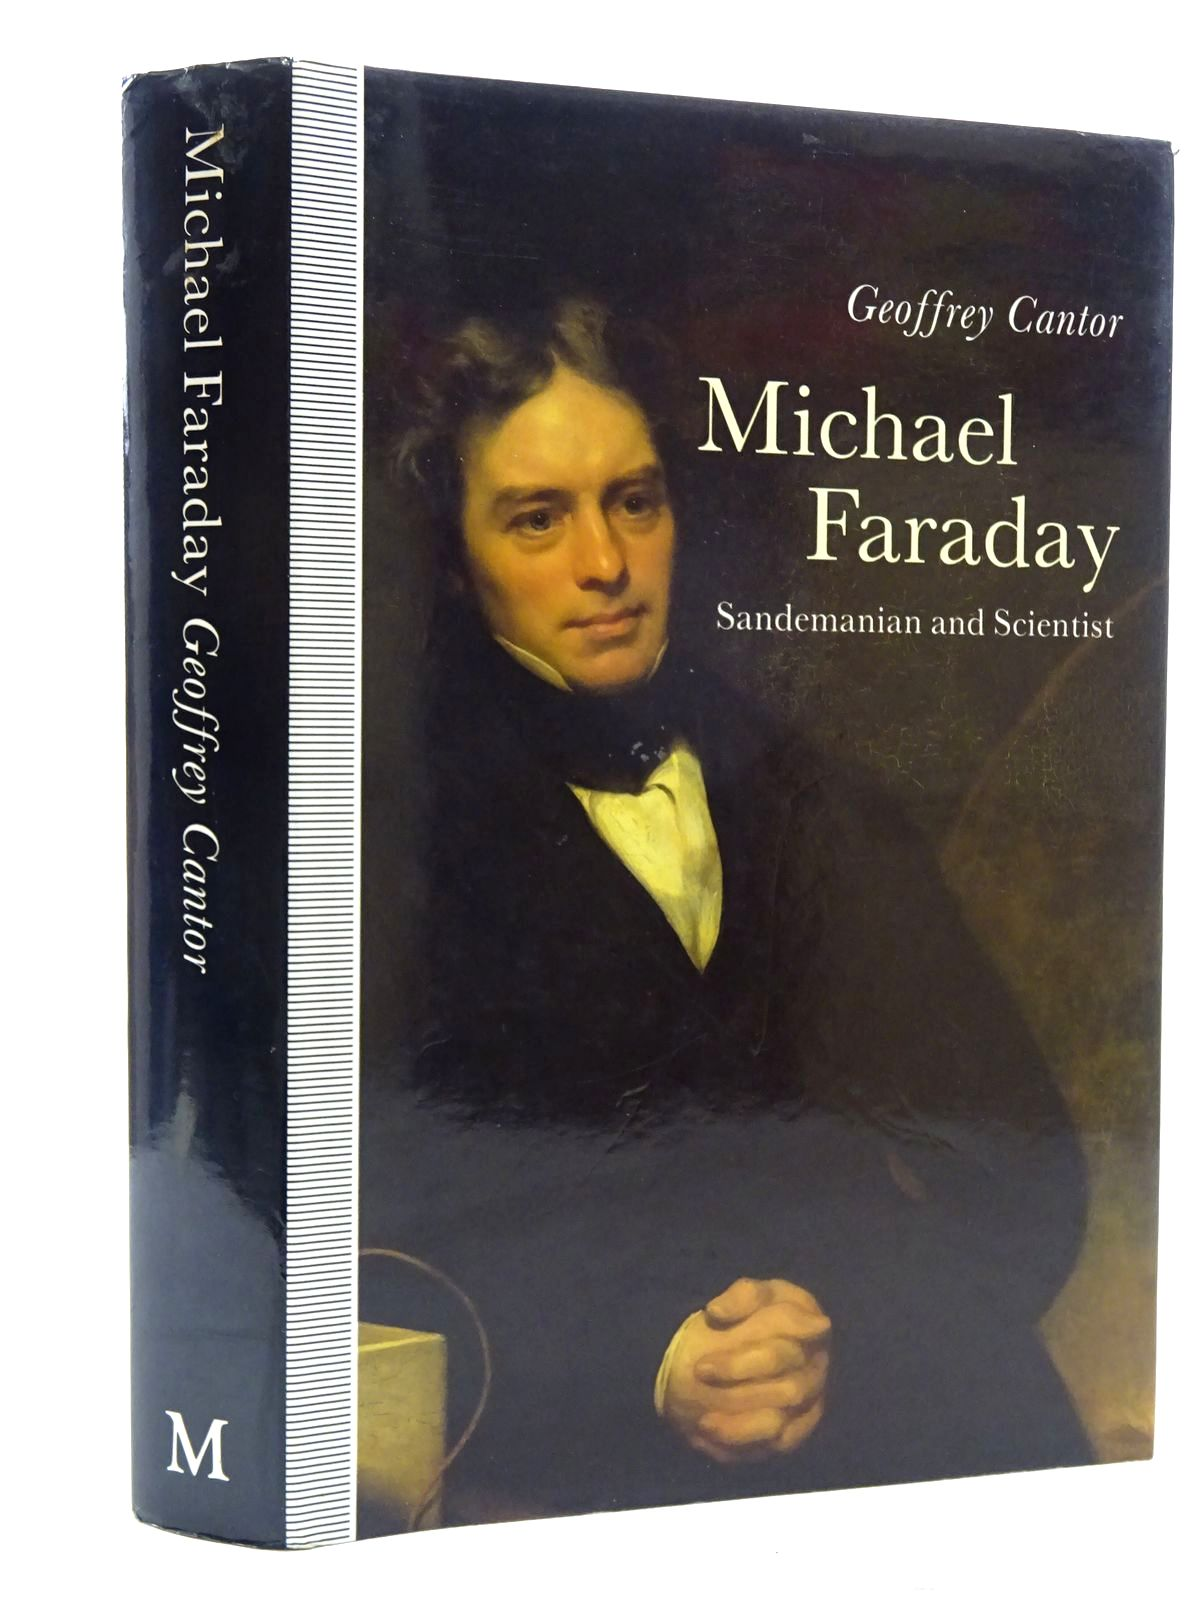 Photo of MICHAEL FARADAY: SANDEMANIAN AND SCIENTIST written by Cantor, Geoffrey published by Macmillan Academic And Professional Ltd (STOCK CODE: 1317370)  for sale by Stella & Rose's Books